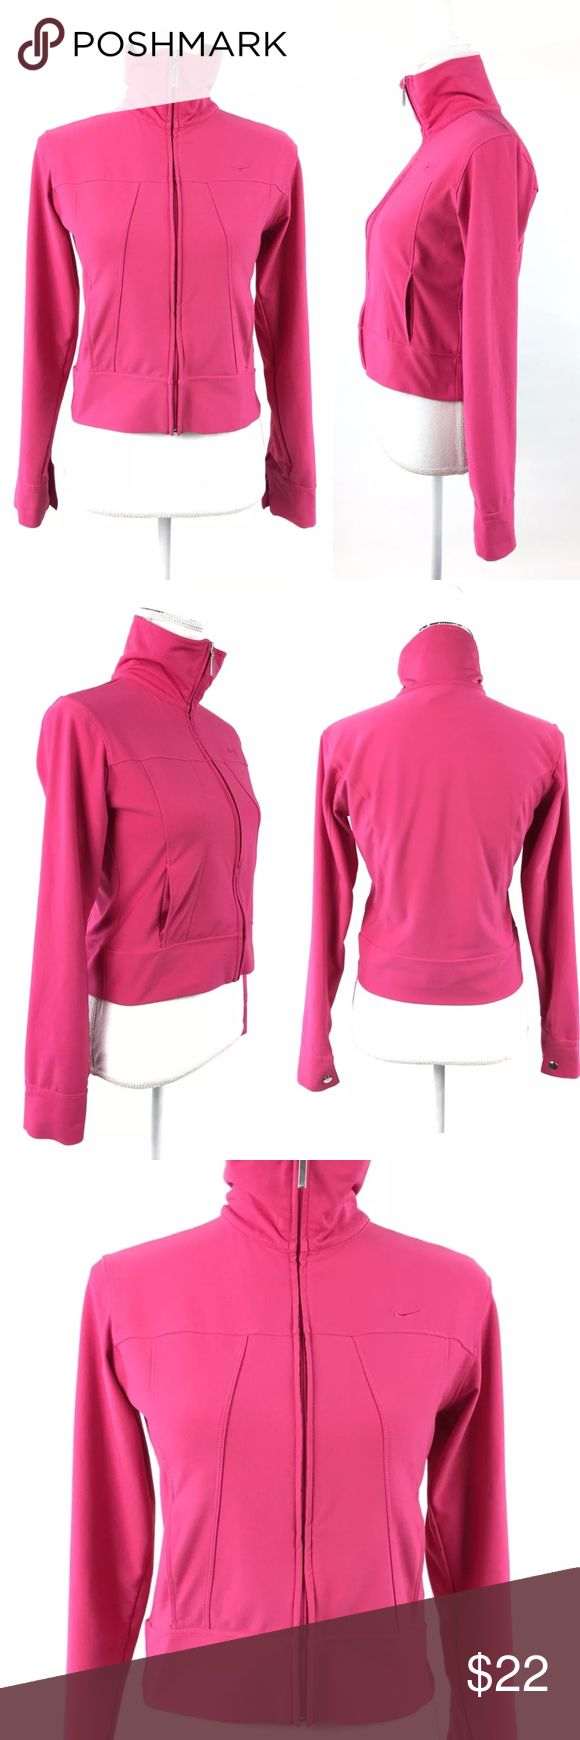 "Nike Women Crop Zip Up Jacket Pink Size Small 4-6 Nike Dri Fit Ladies Stretchy zip up slightly cropped jacket in size small. Pockets, bright pink color!  This jacket is in good pre-owned condition however with minor flaw:  - missing and loose stitches by the cuff. Please see photo.  Flat Measurements Approximate:  Across Chest: 17"" Shoulder to hem: 18.5"" Sleeves: 23.75""  AA271E Nike Jackets & Coats"